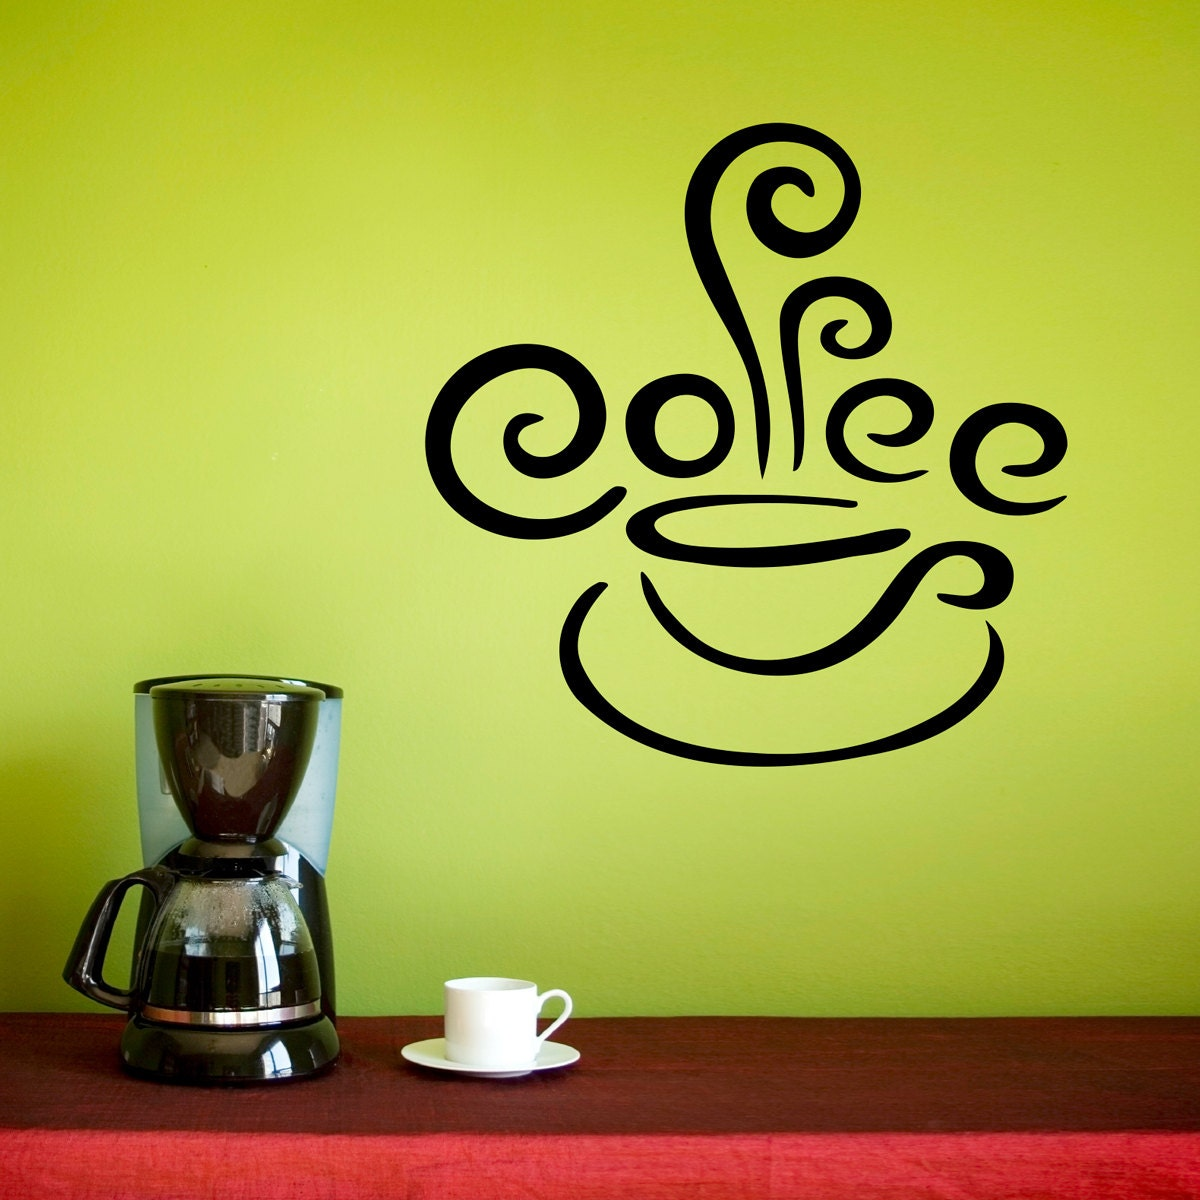 Coffee Wall Decal Kitchen Decor Coffee Cup Decal with